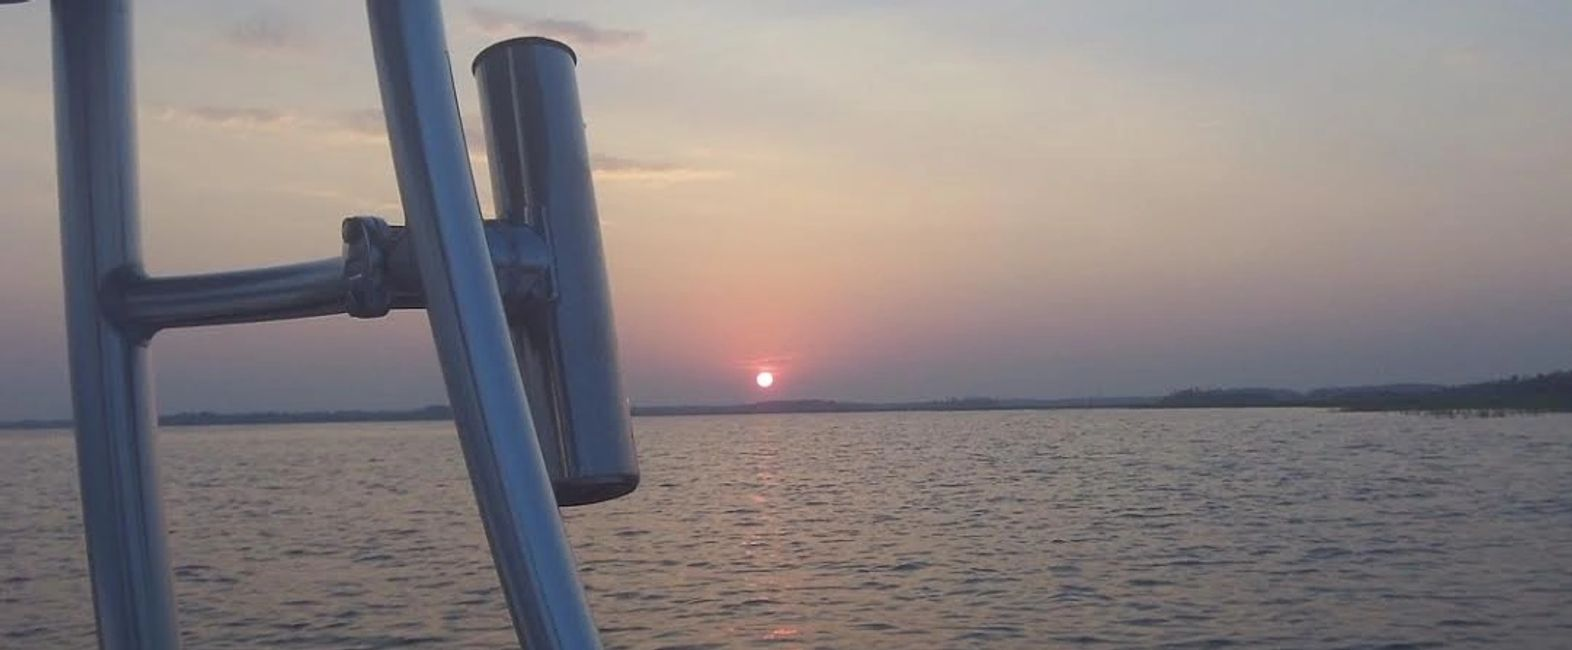 sunset and fishing rod holder on the Wando River